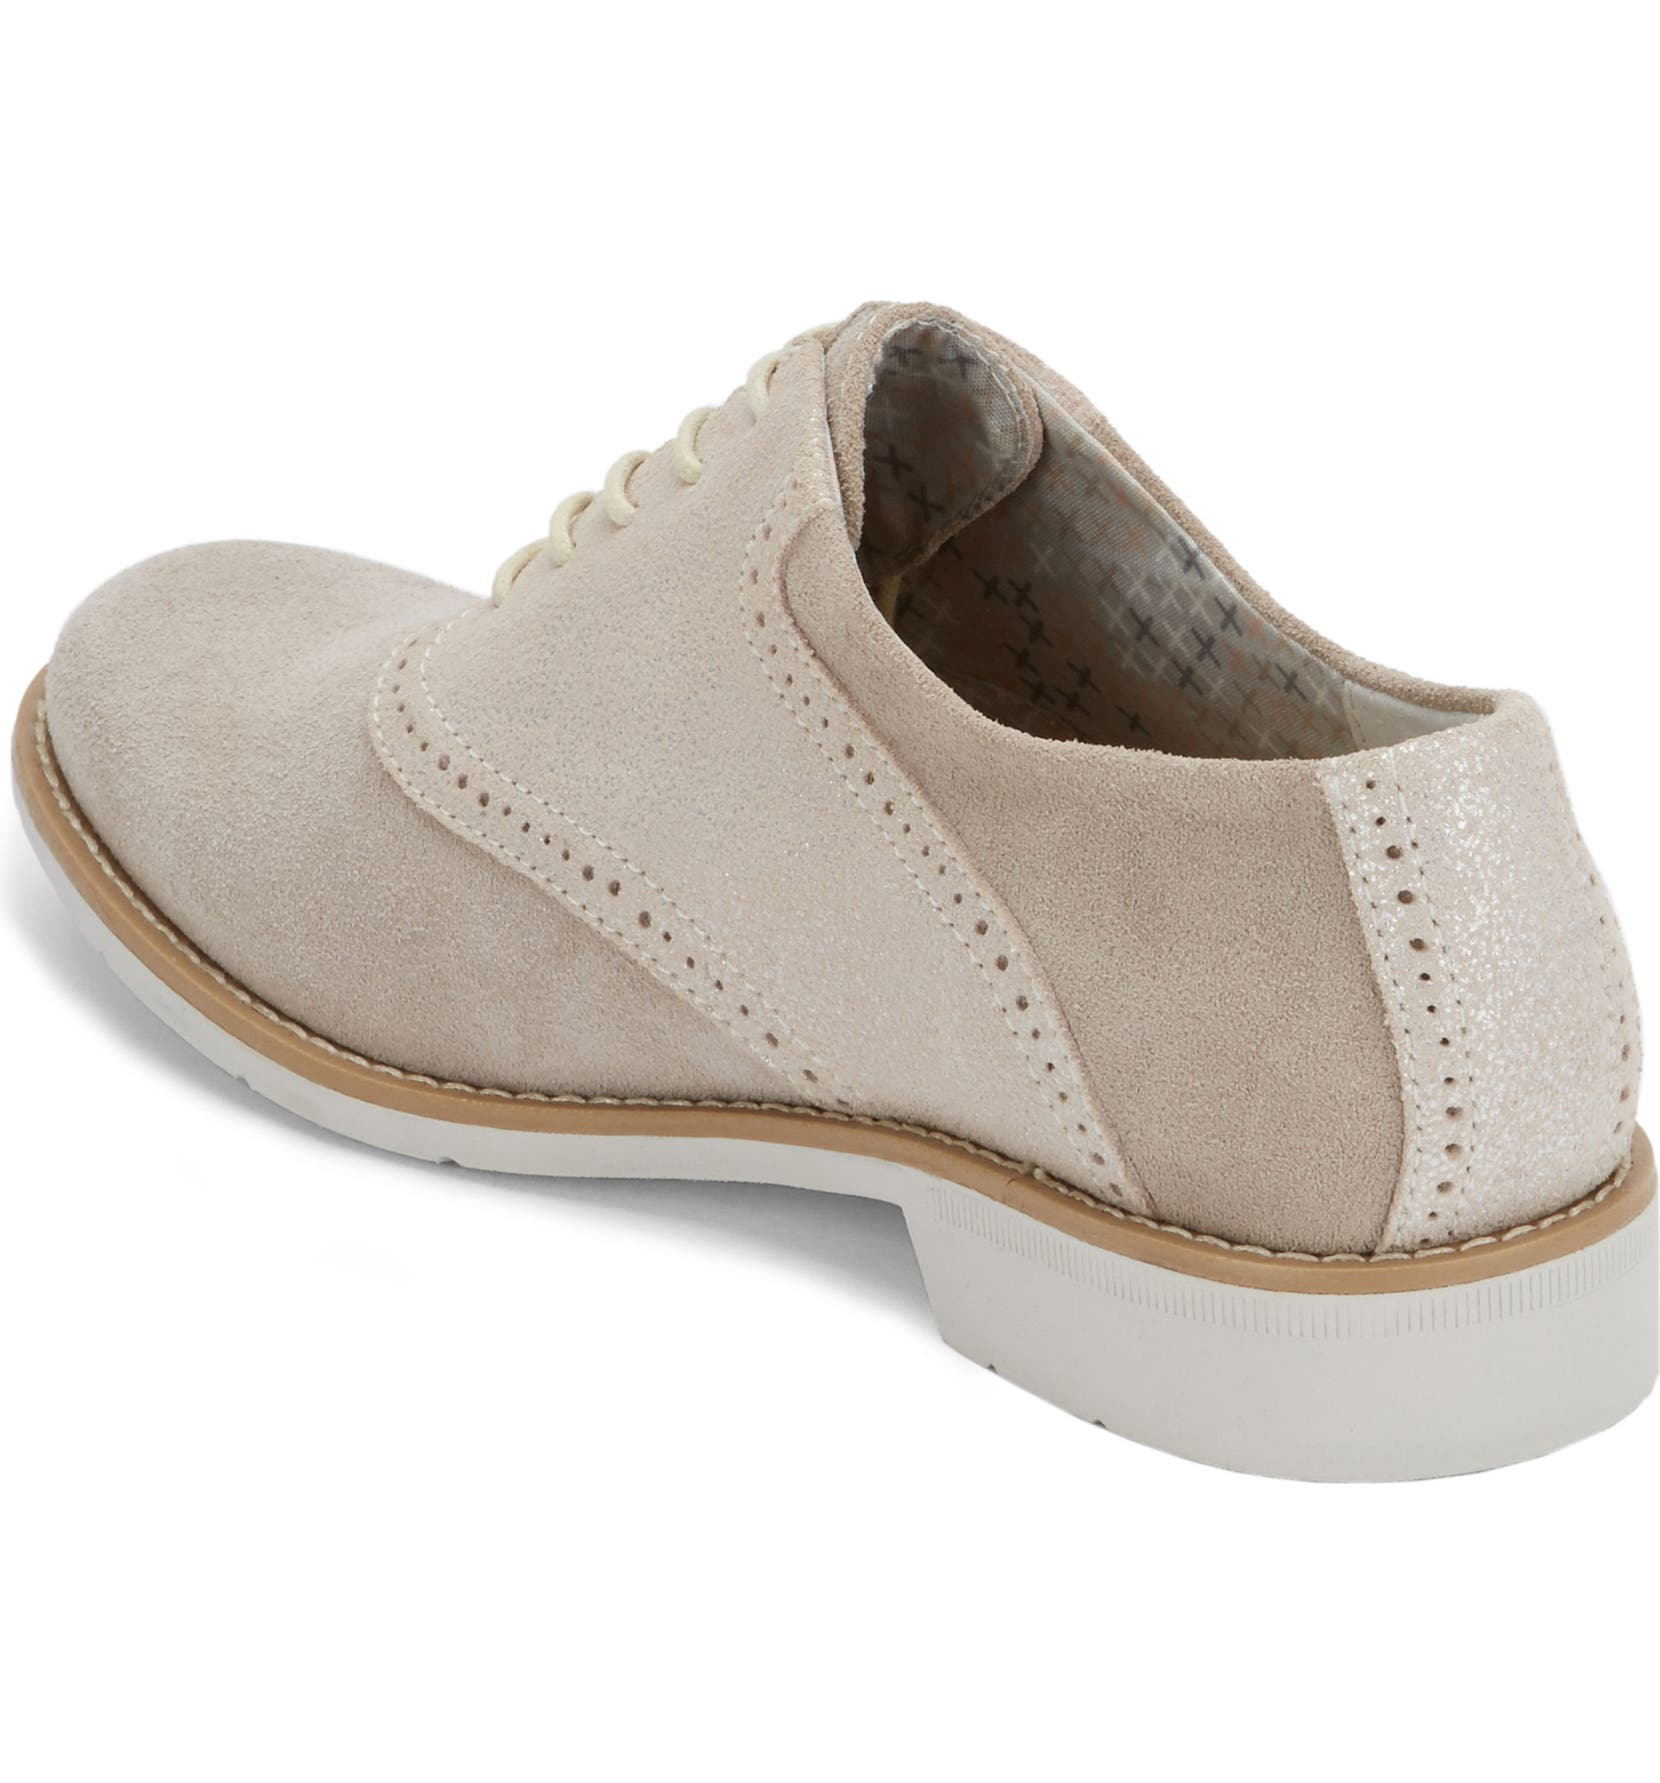 9fbb77dda4a7 G.H. Bass and Co. Dora Lace-Up Oxford (Women)